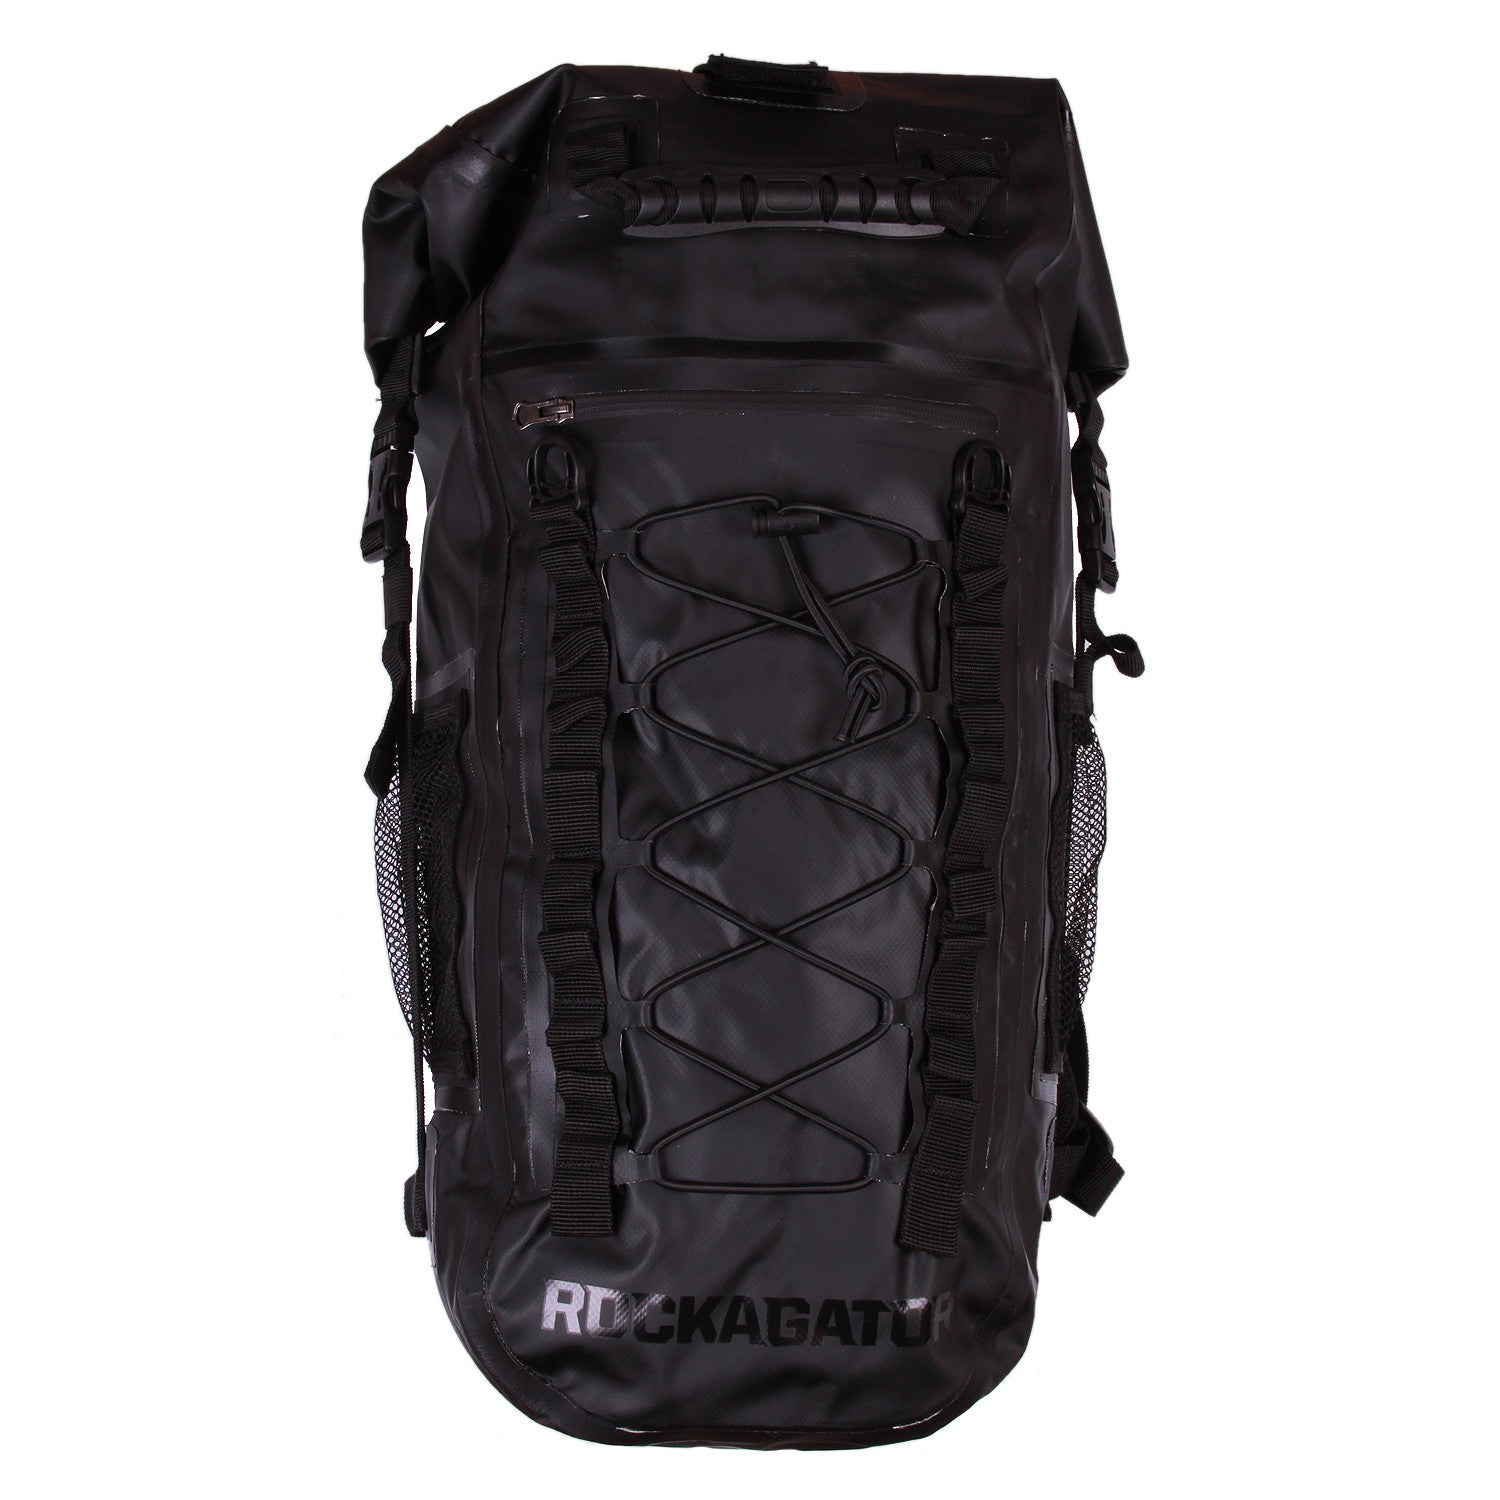 61e0ffe6c040 Rockagator RG-25 GEN3 40 Liter COVERT Waterproof Backpack